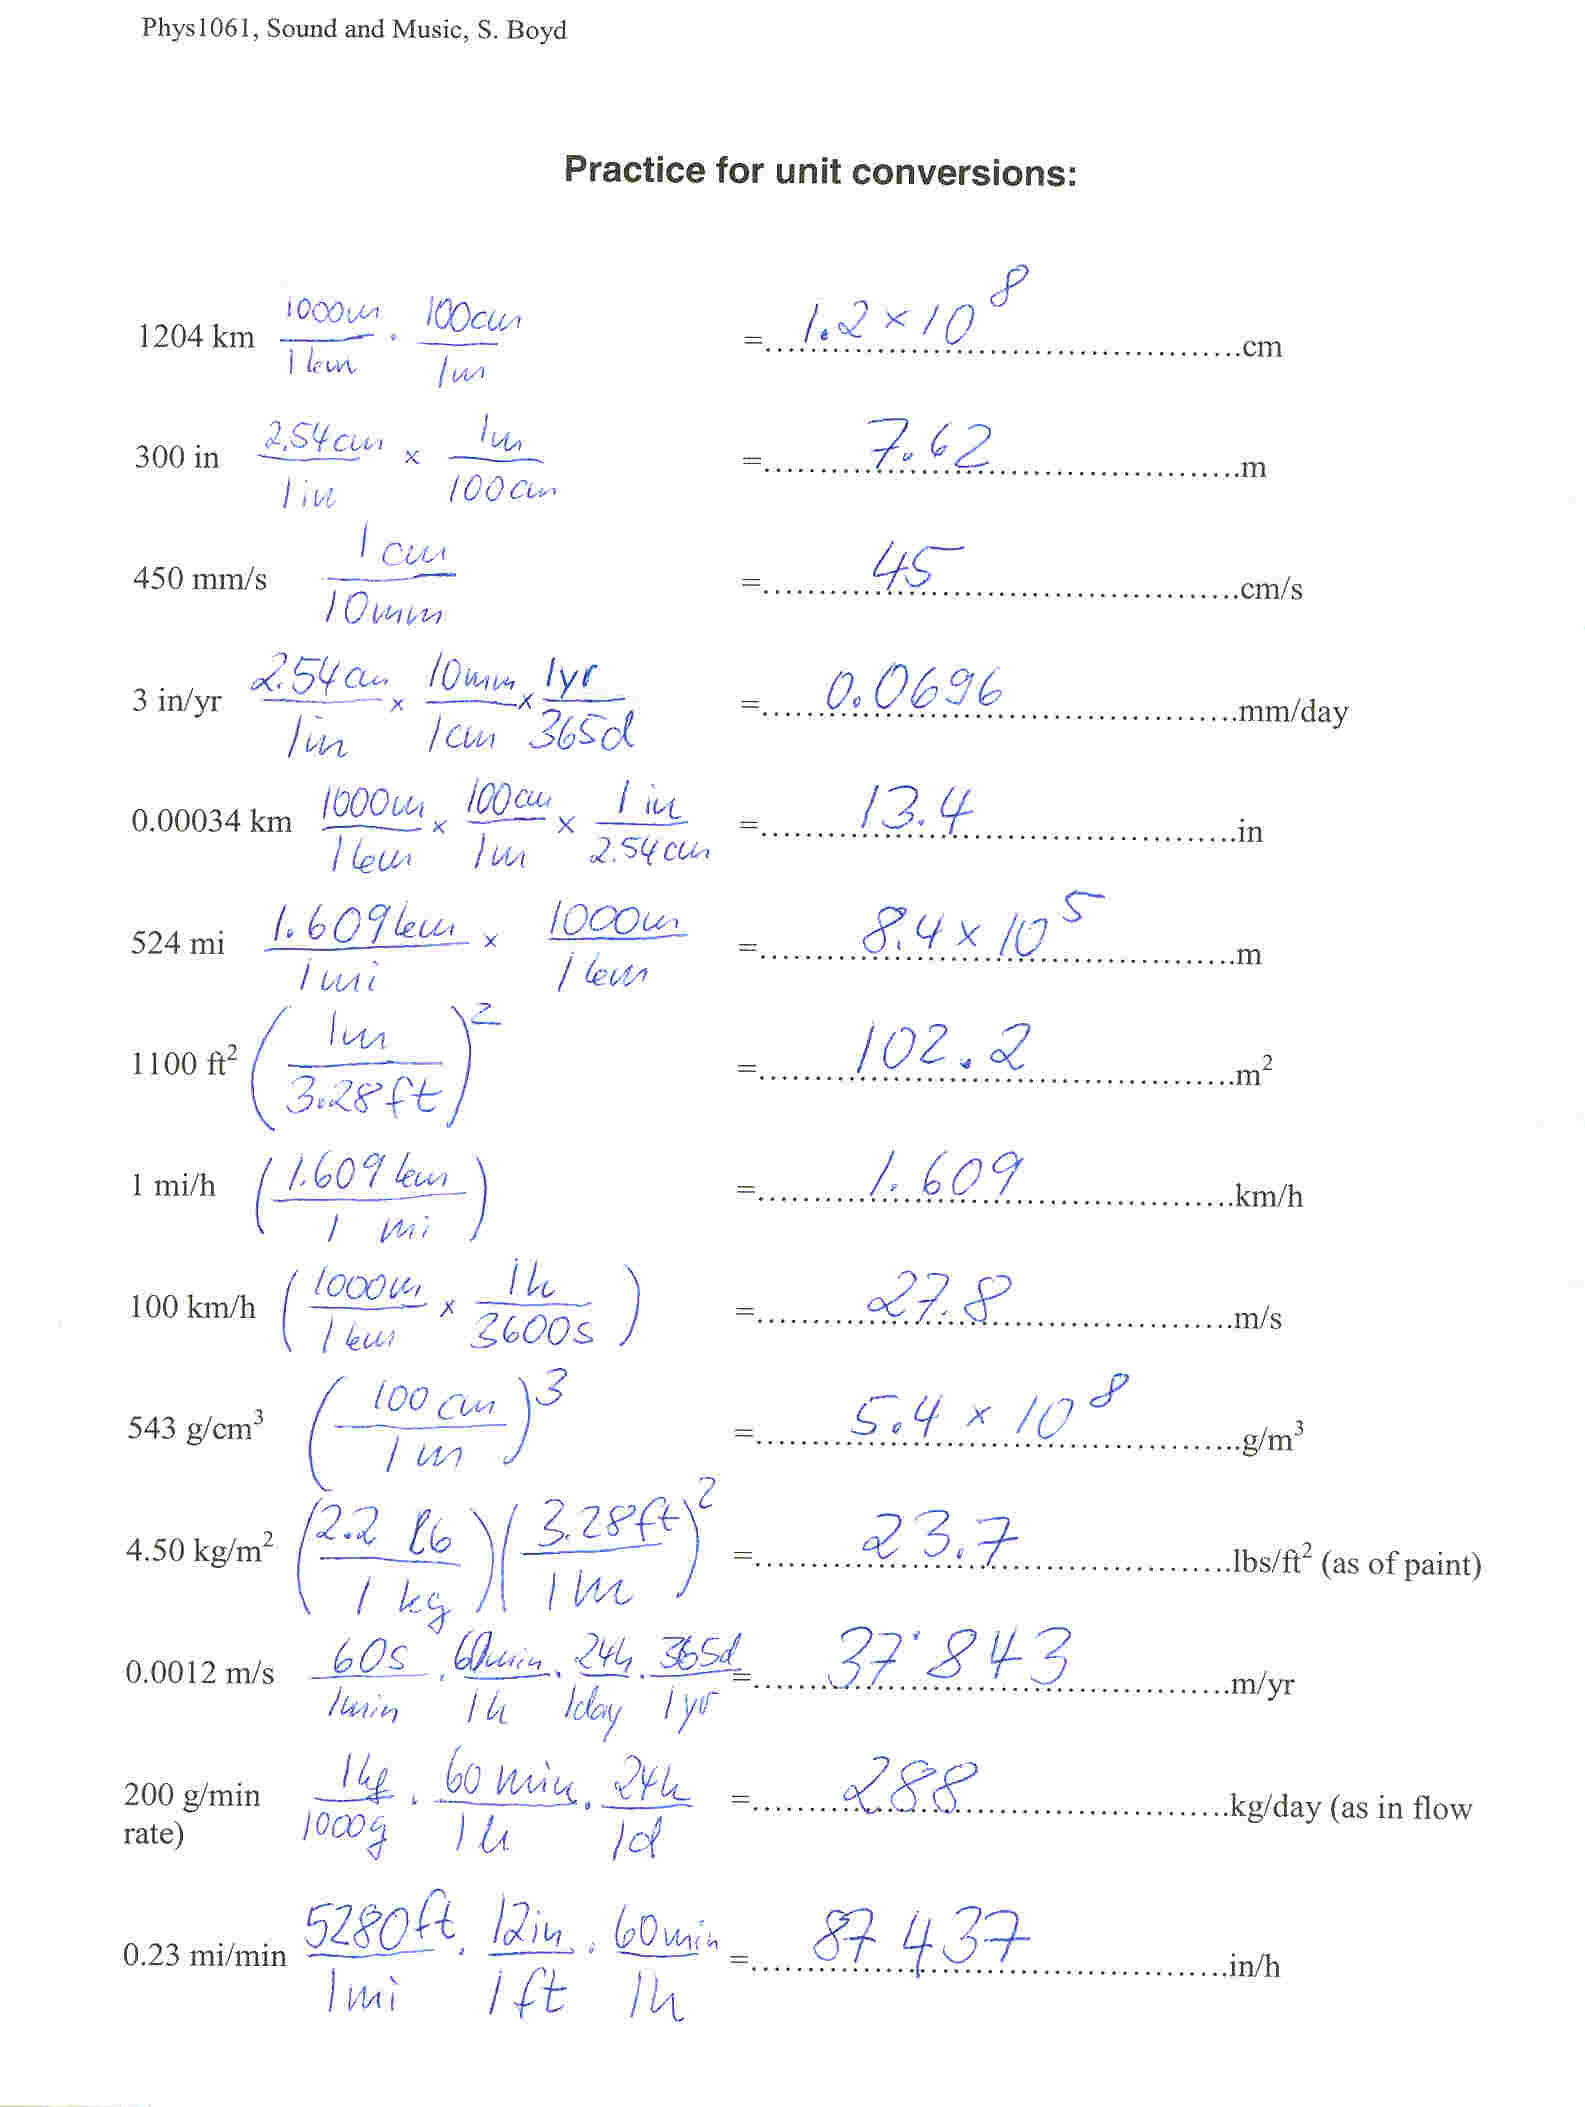 35 Unit Conversions Worksheet Answers